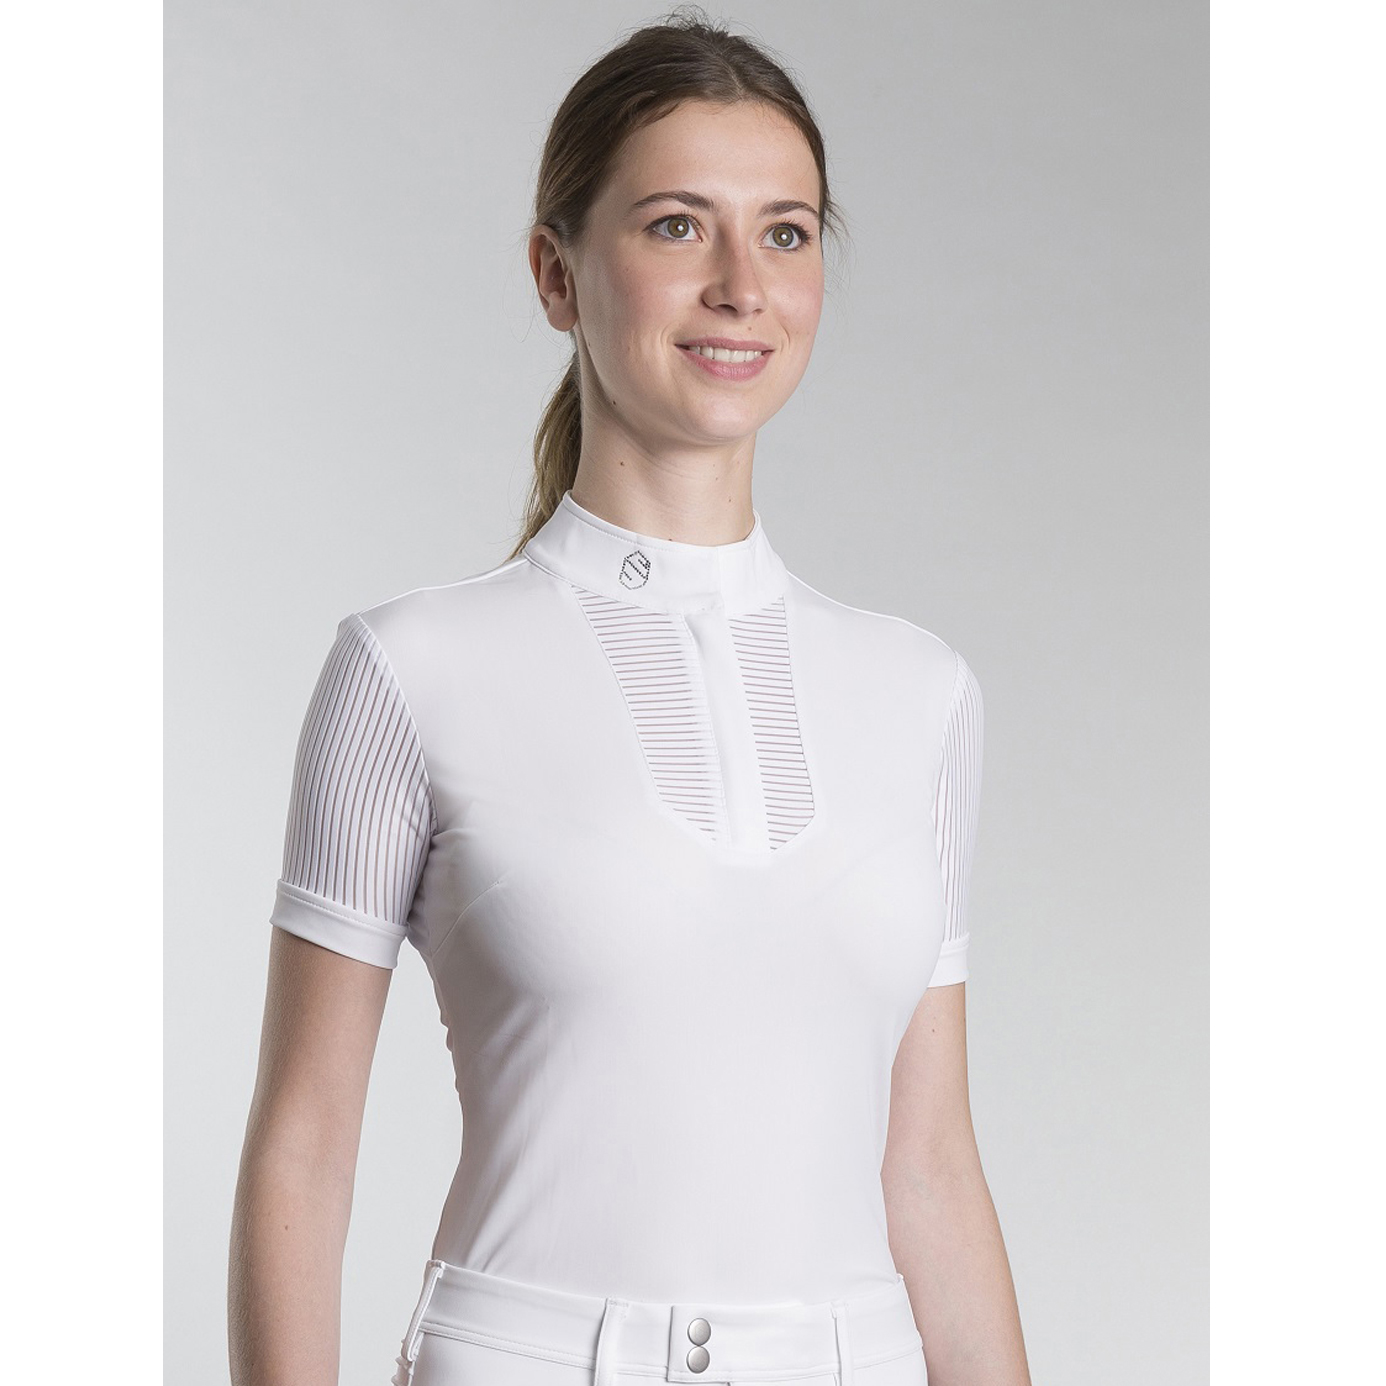 Samshield Apolline Ladies Competition Shirt